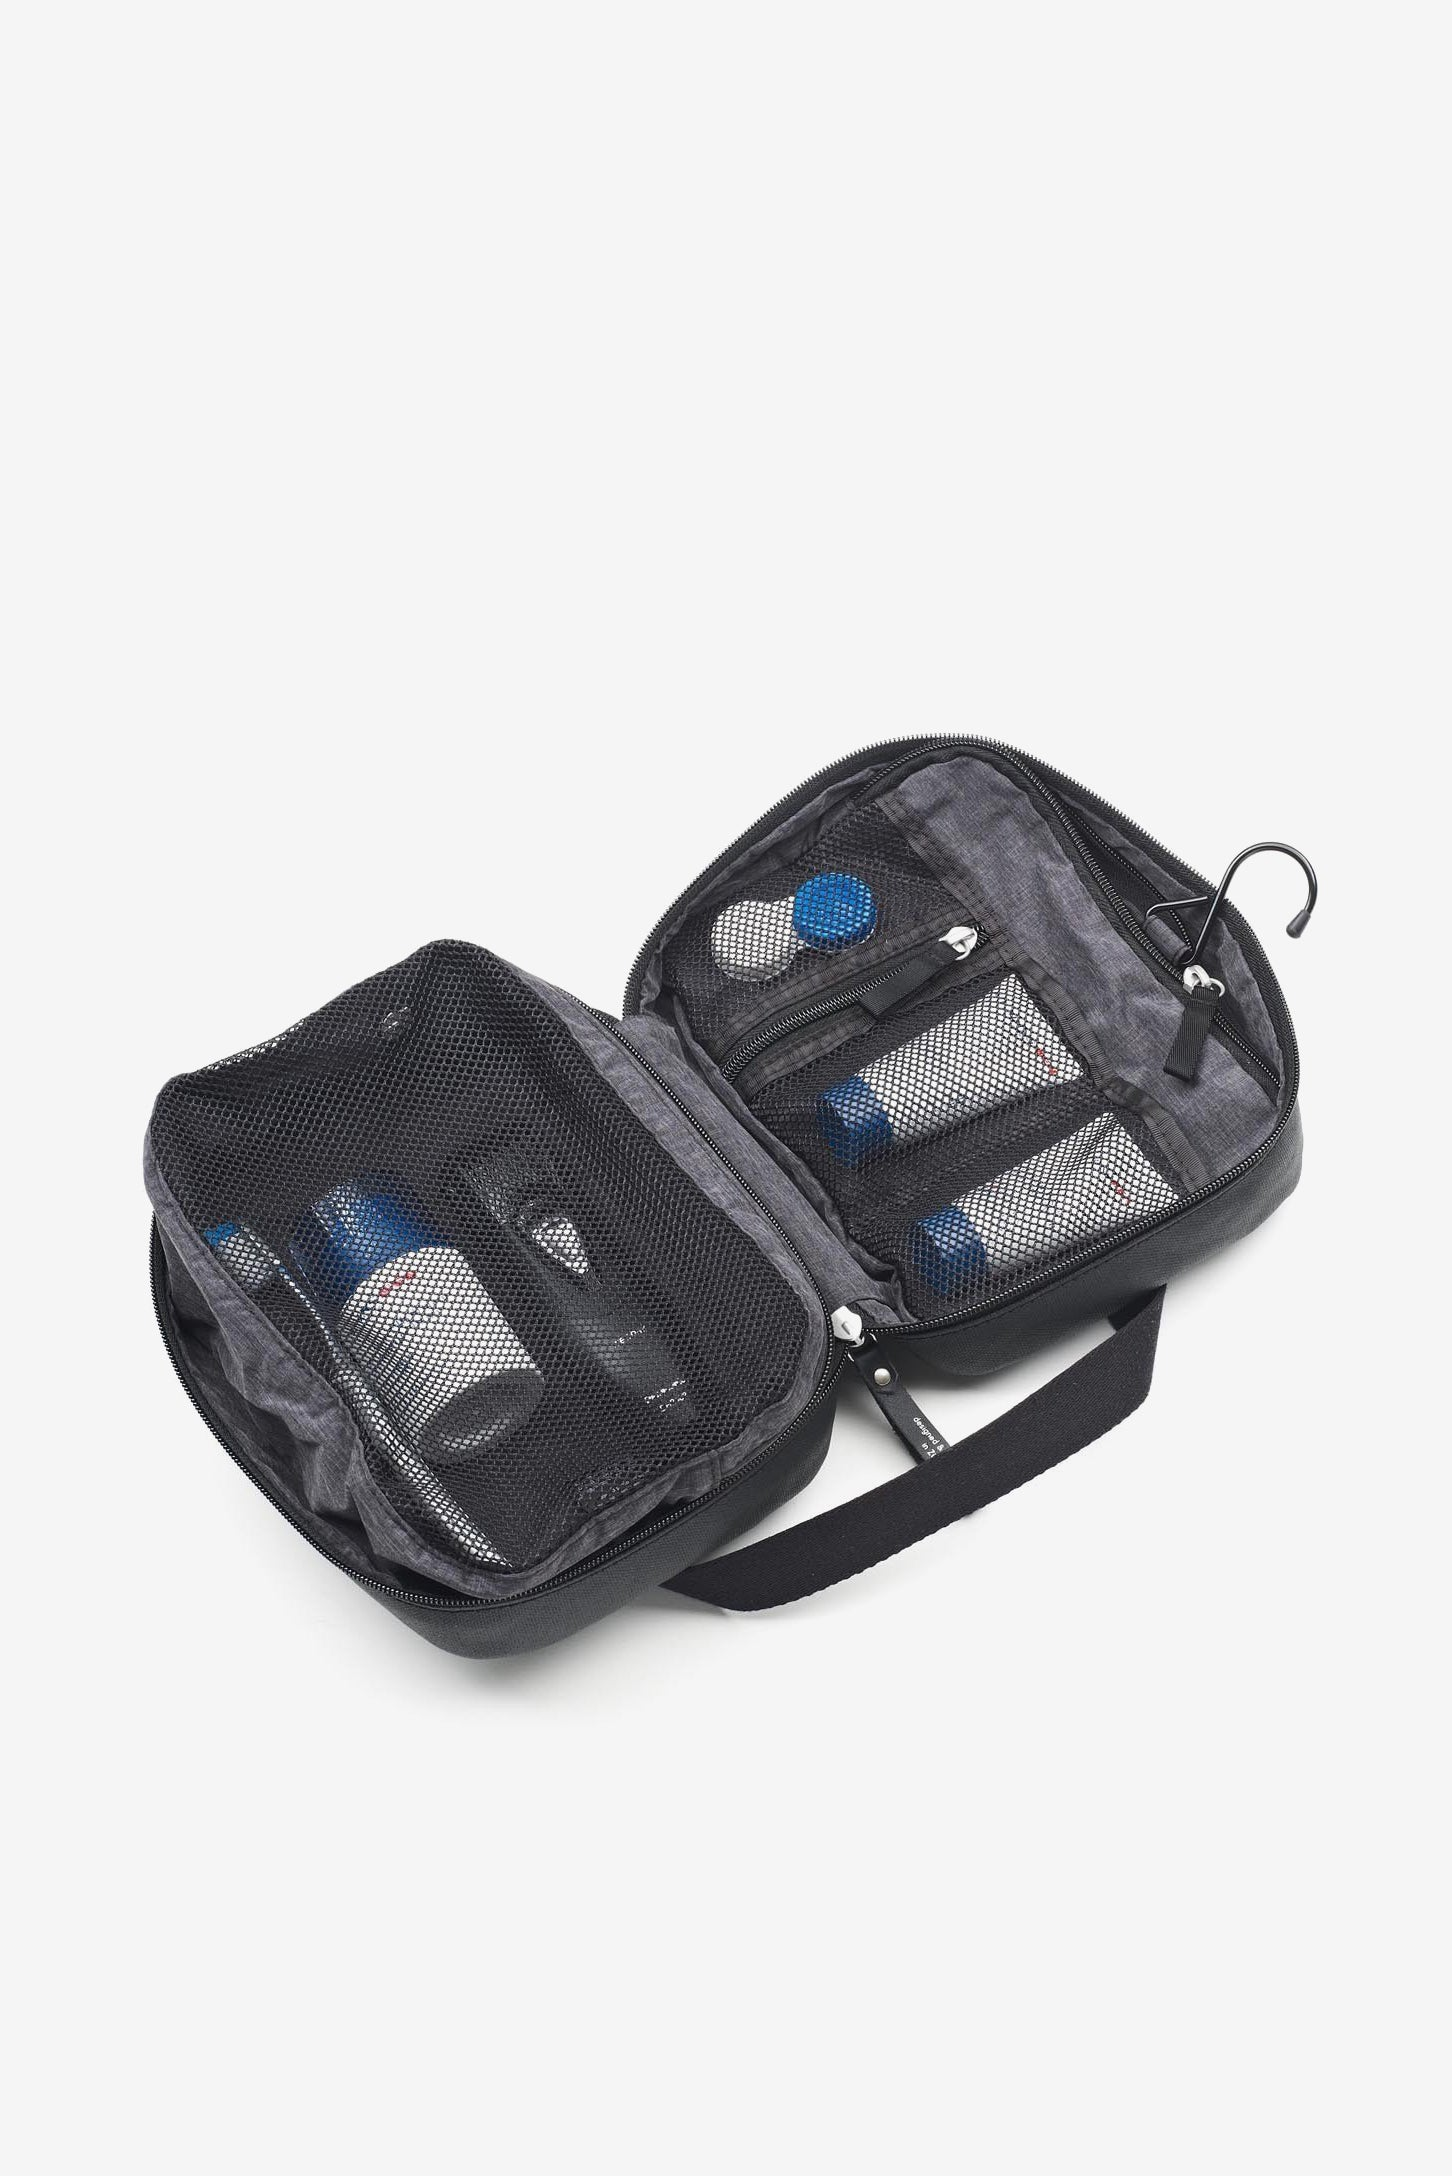 Toiletry Kit Organic Jet Black, Bags, QWSTION - Six and Sons